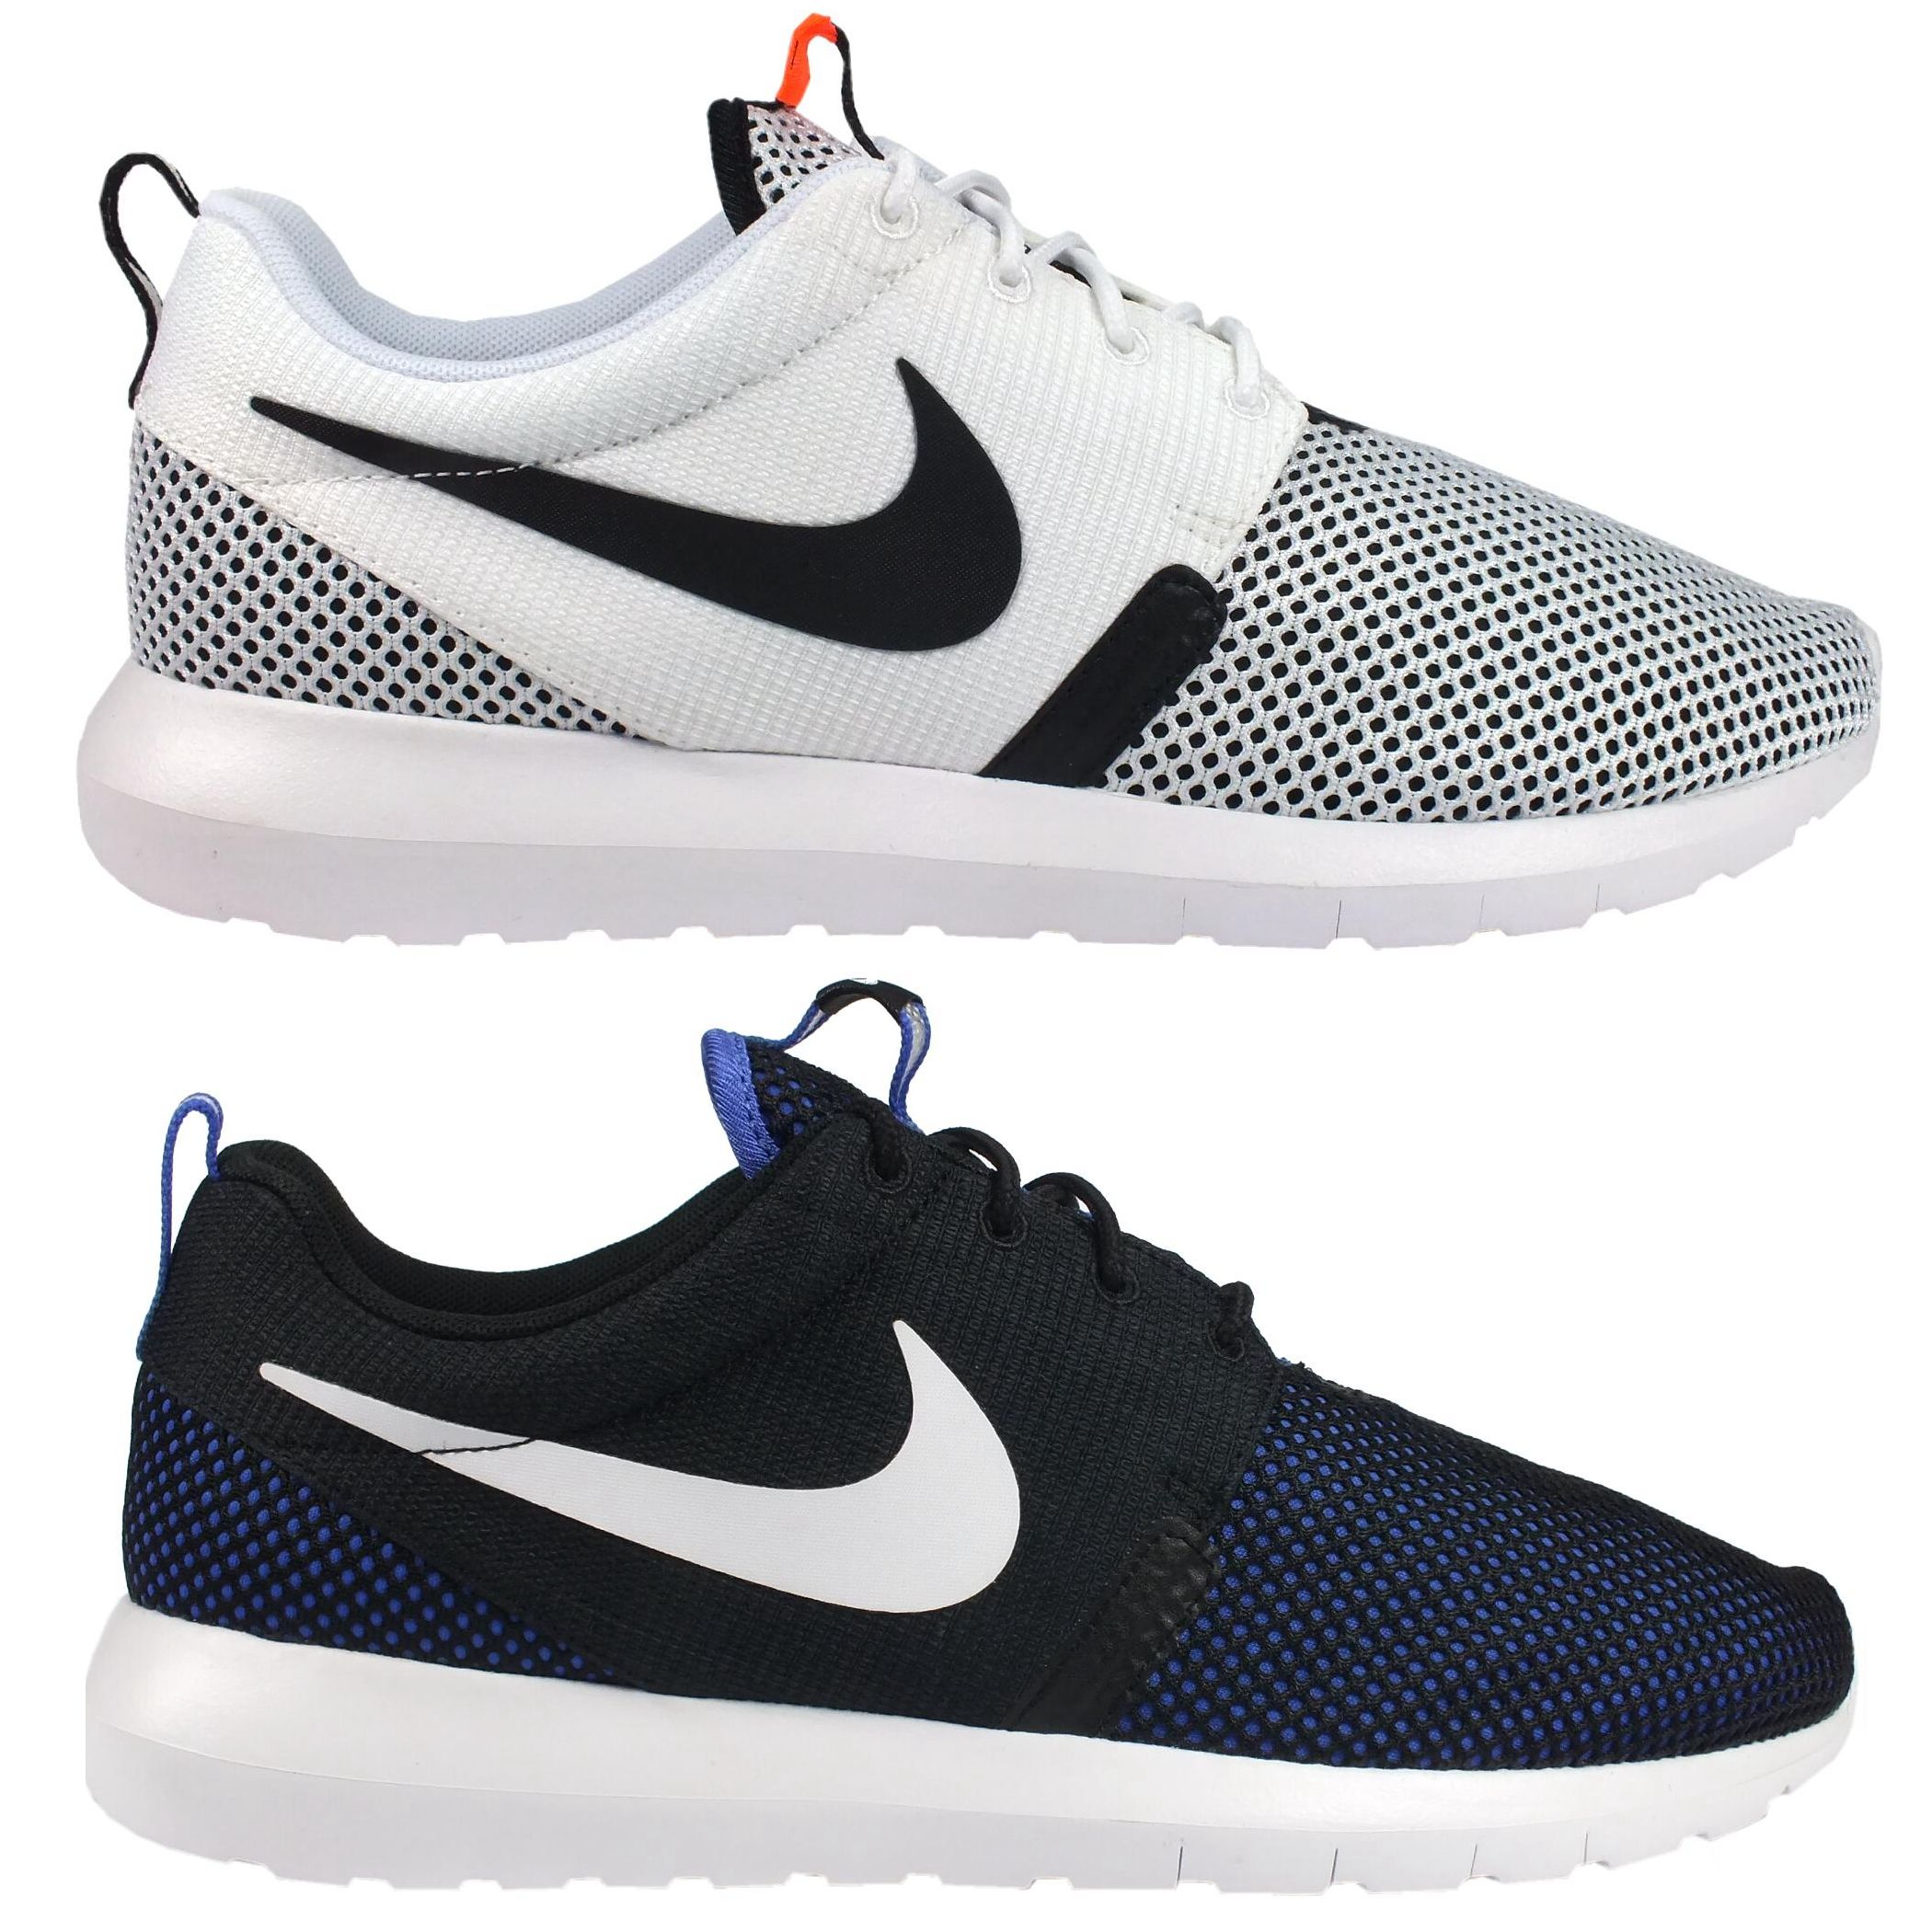 nike roshe one nm breeze schuhe turnschuhe sneaker. Black Bedroom Furniture Sets. Home Design Ideas